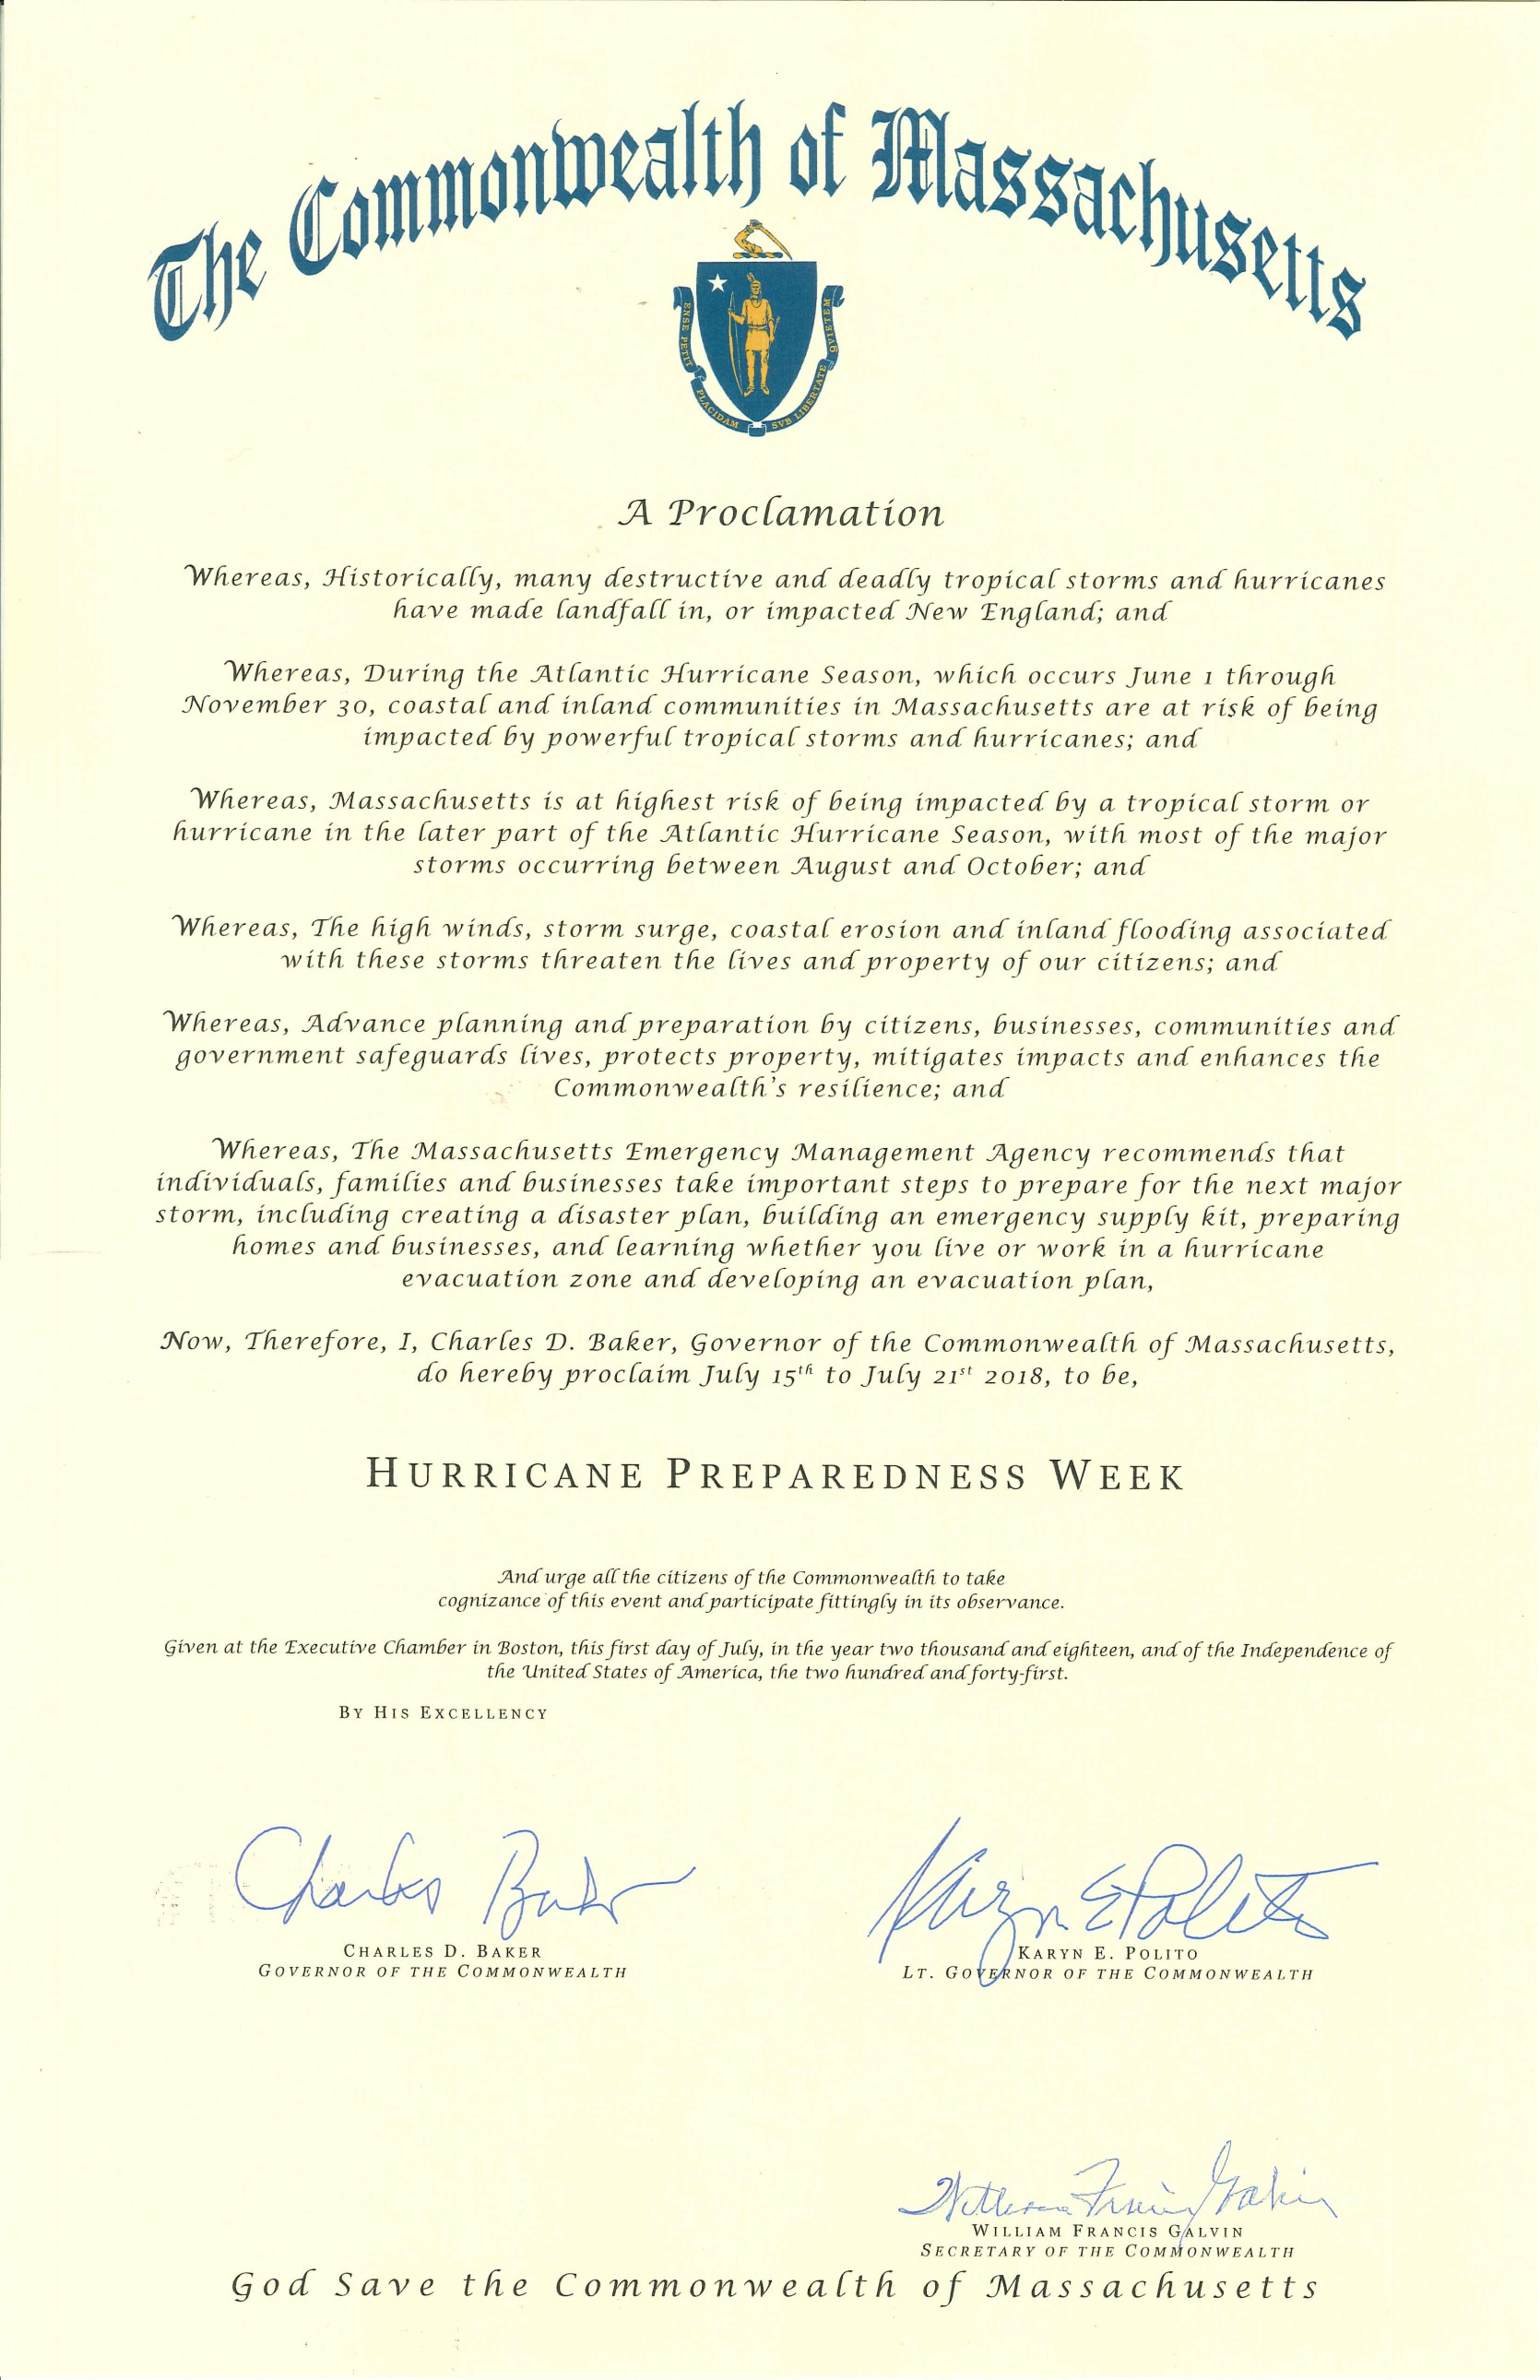 Hurricane Preparedness Proclamation